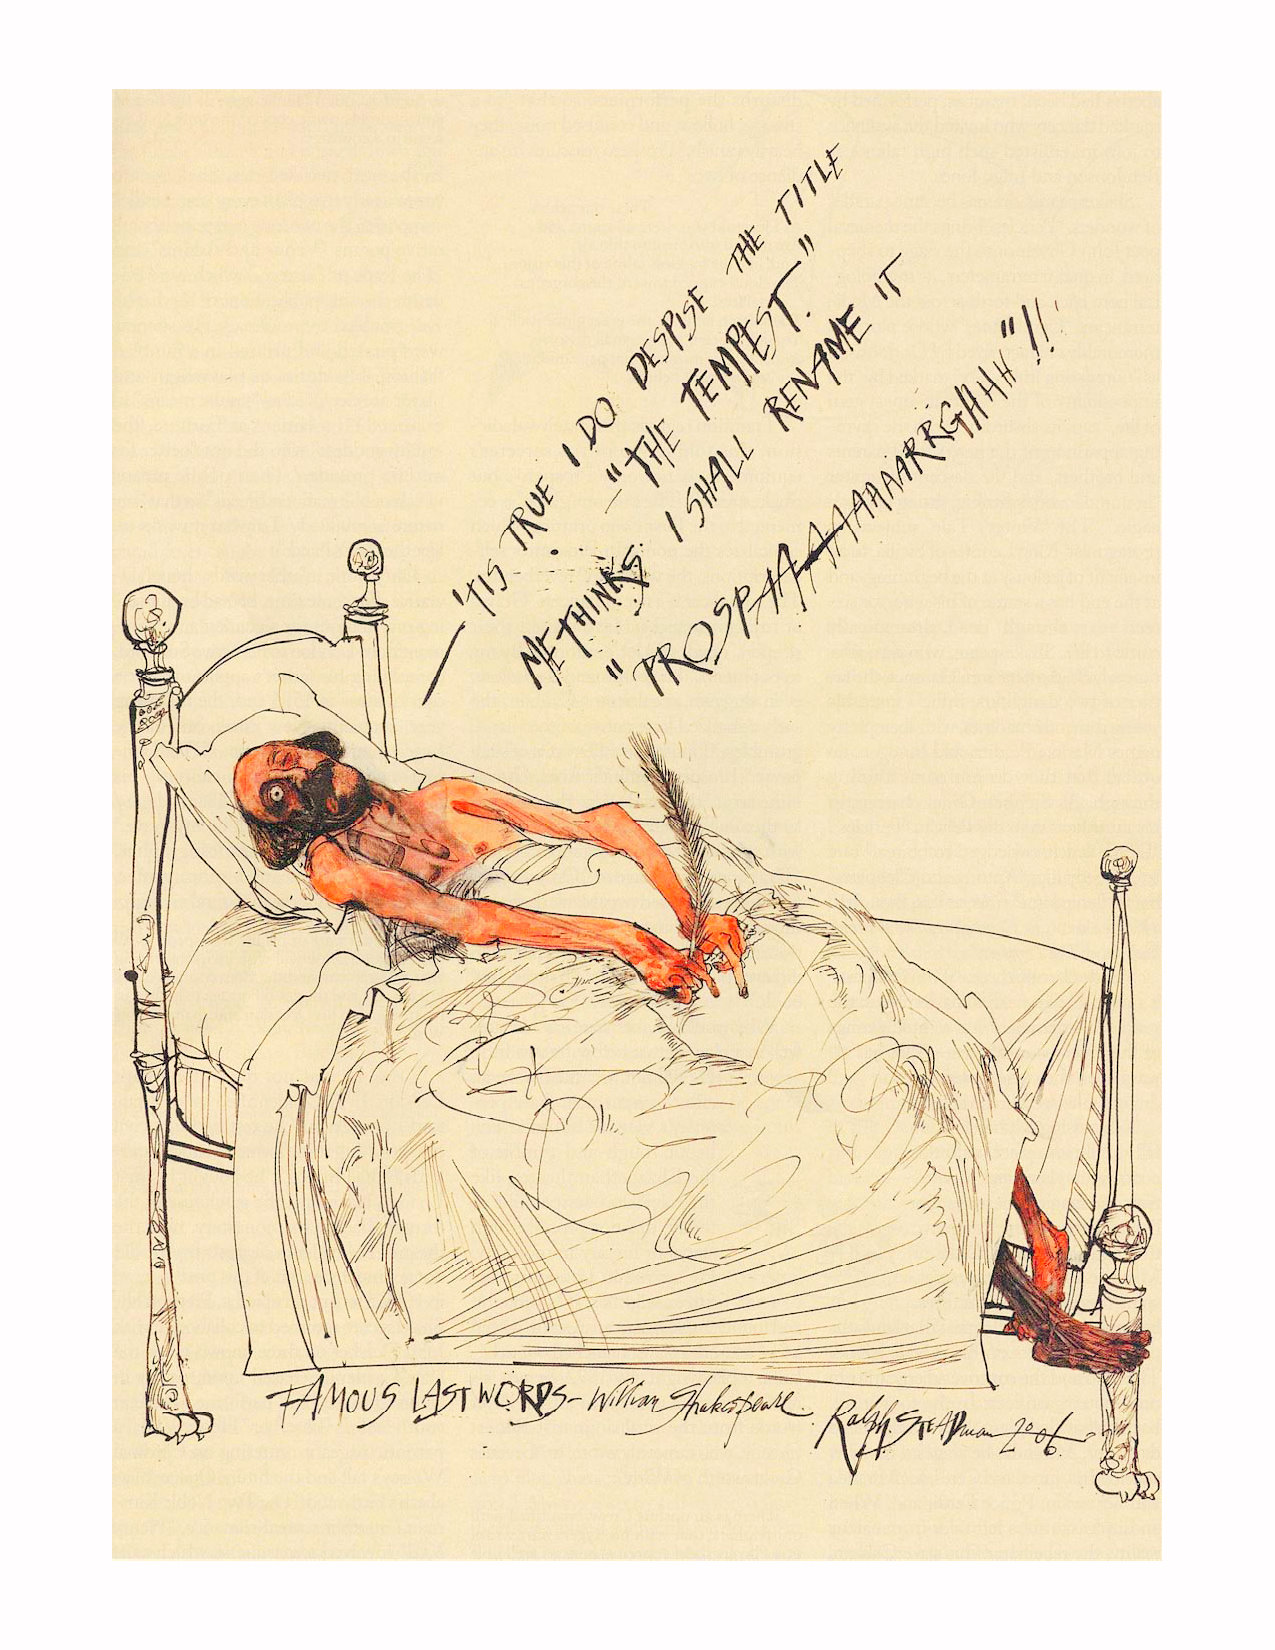 Famous Last Words, William Shakespeare by Ralph Steadman, 2006